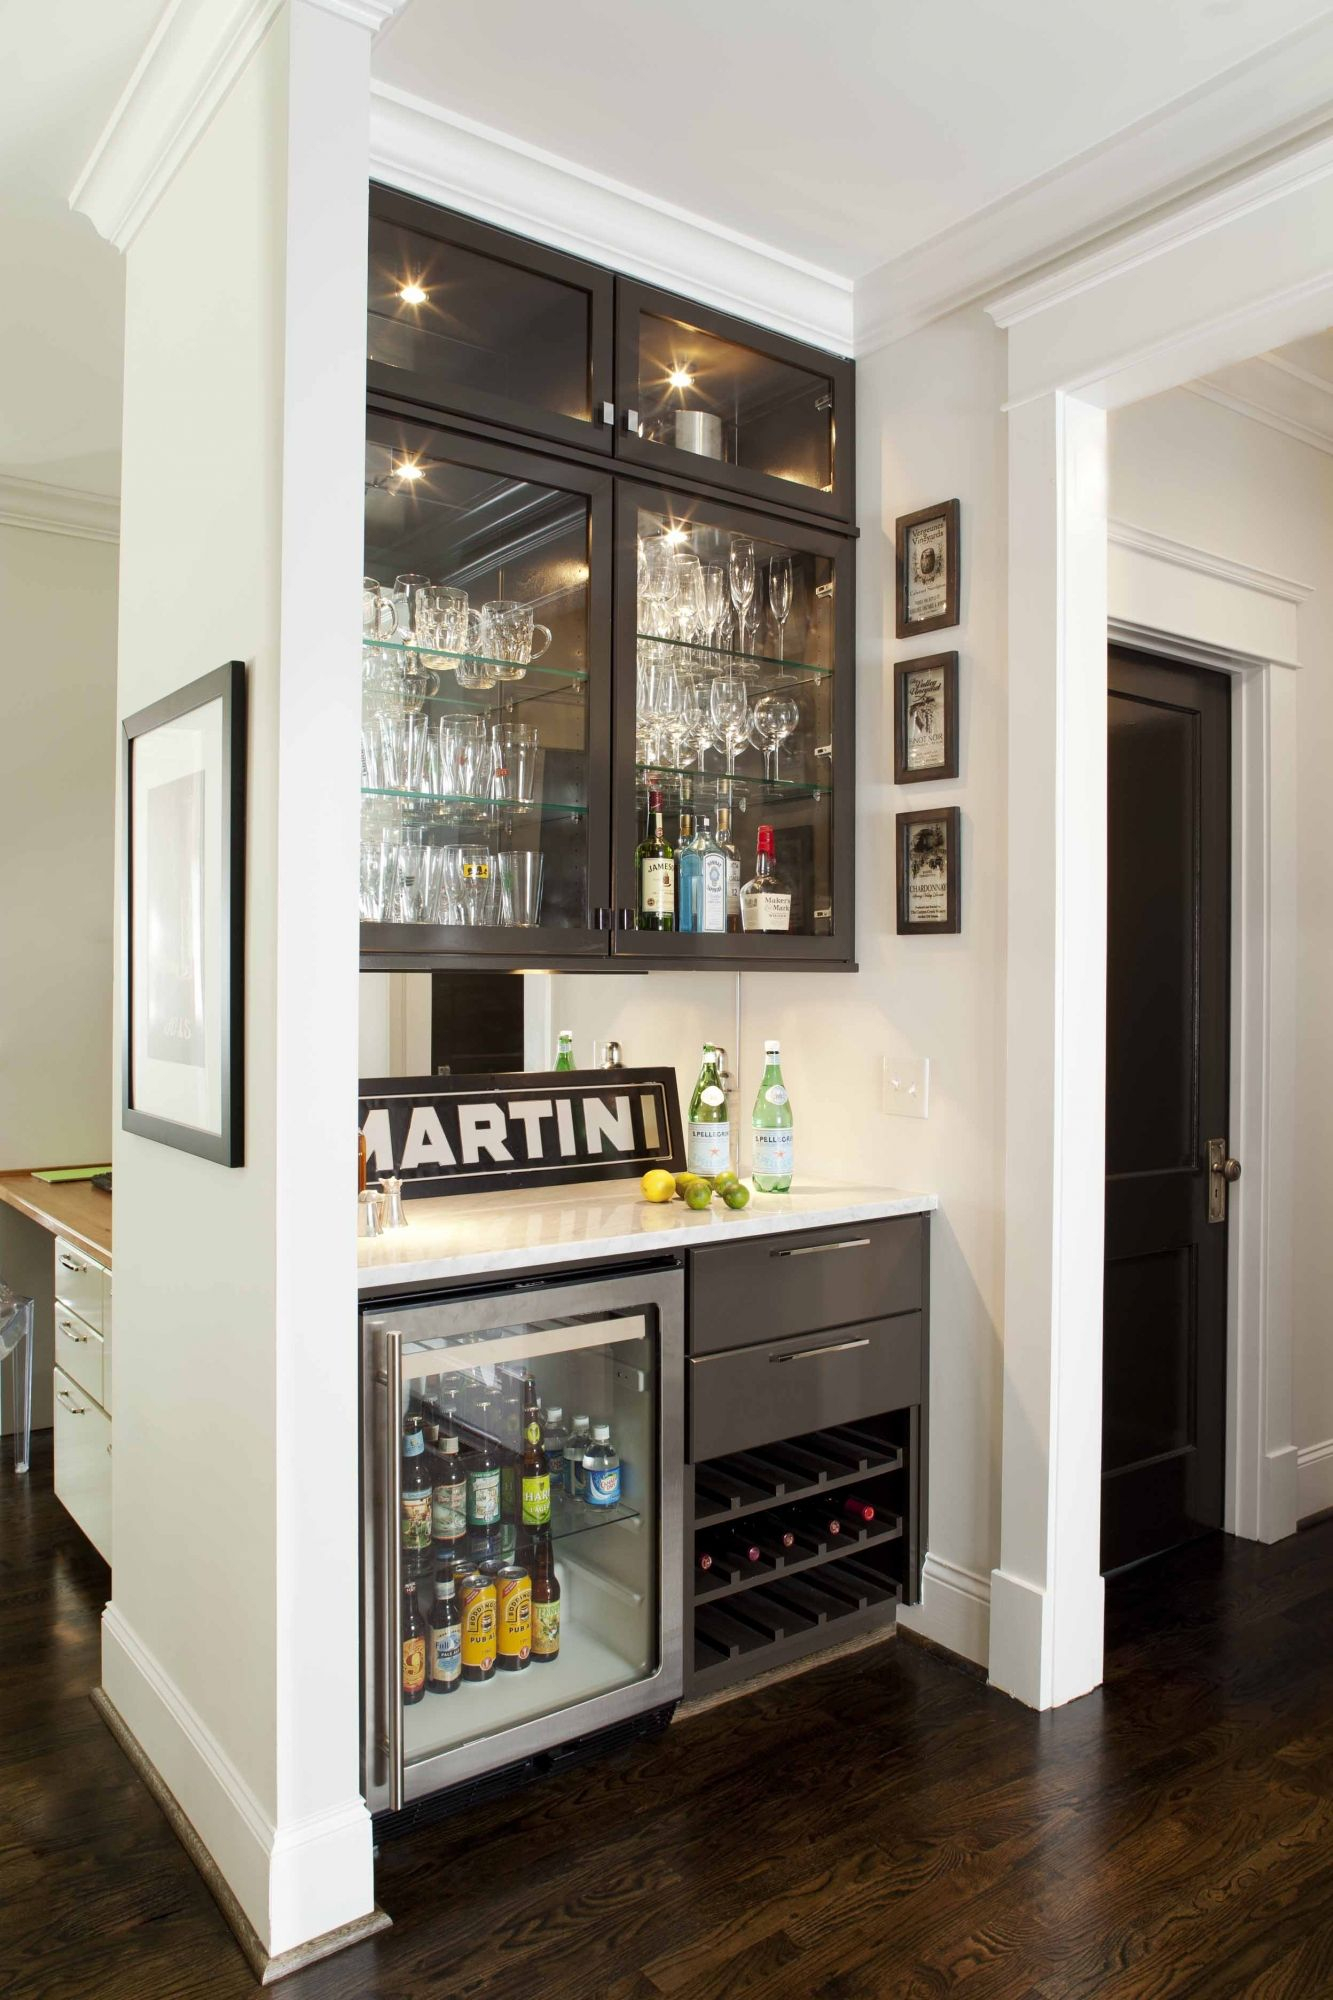 80 Incredible Home Bar Design Ideas Photos Ideas For The House with Living Room Bar Sets